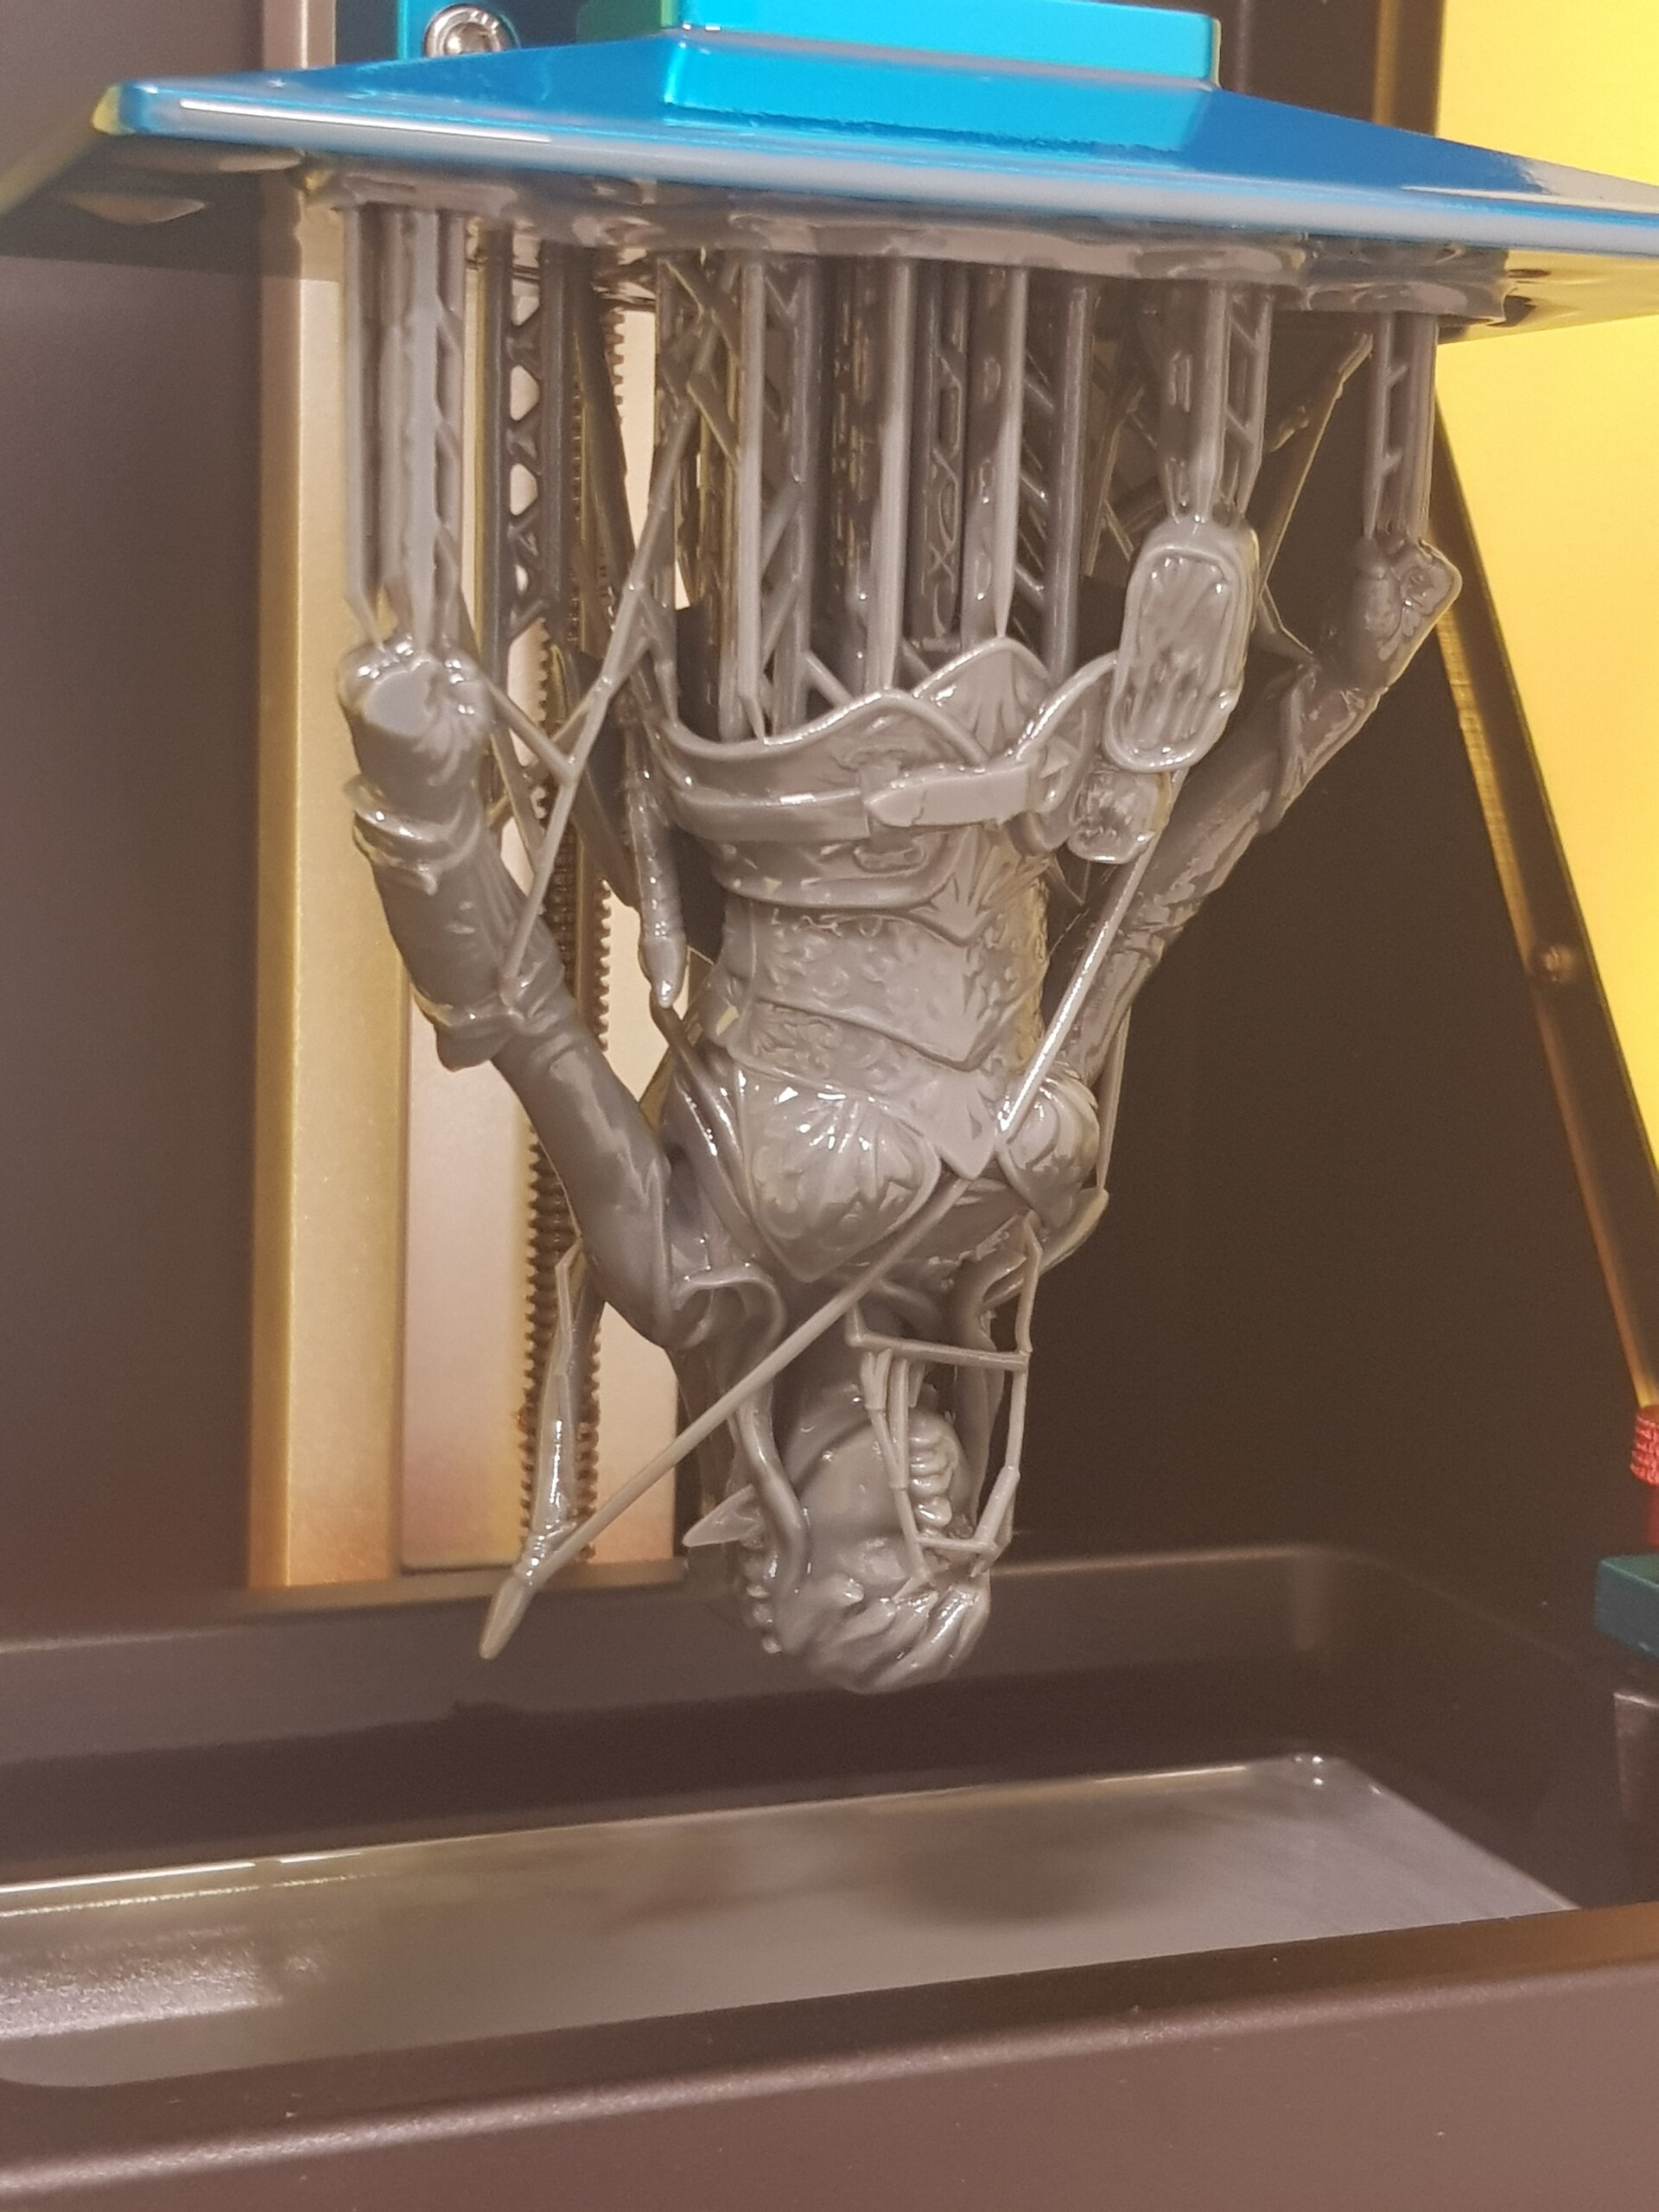 The top part of the big-size print, still attached to the printer bed